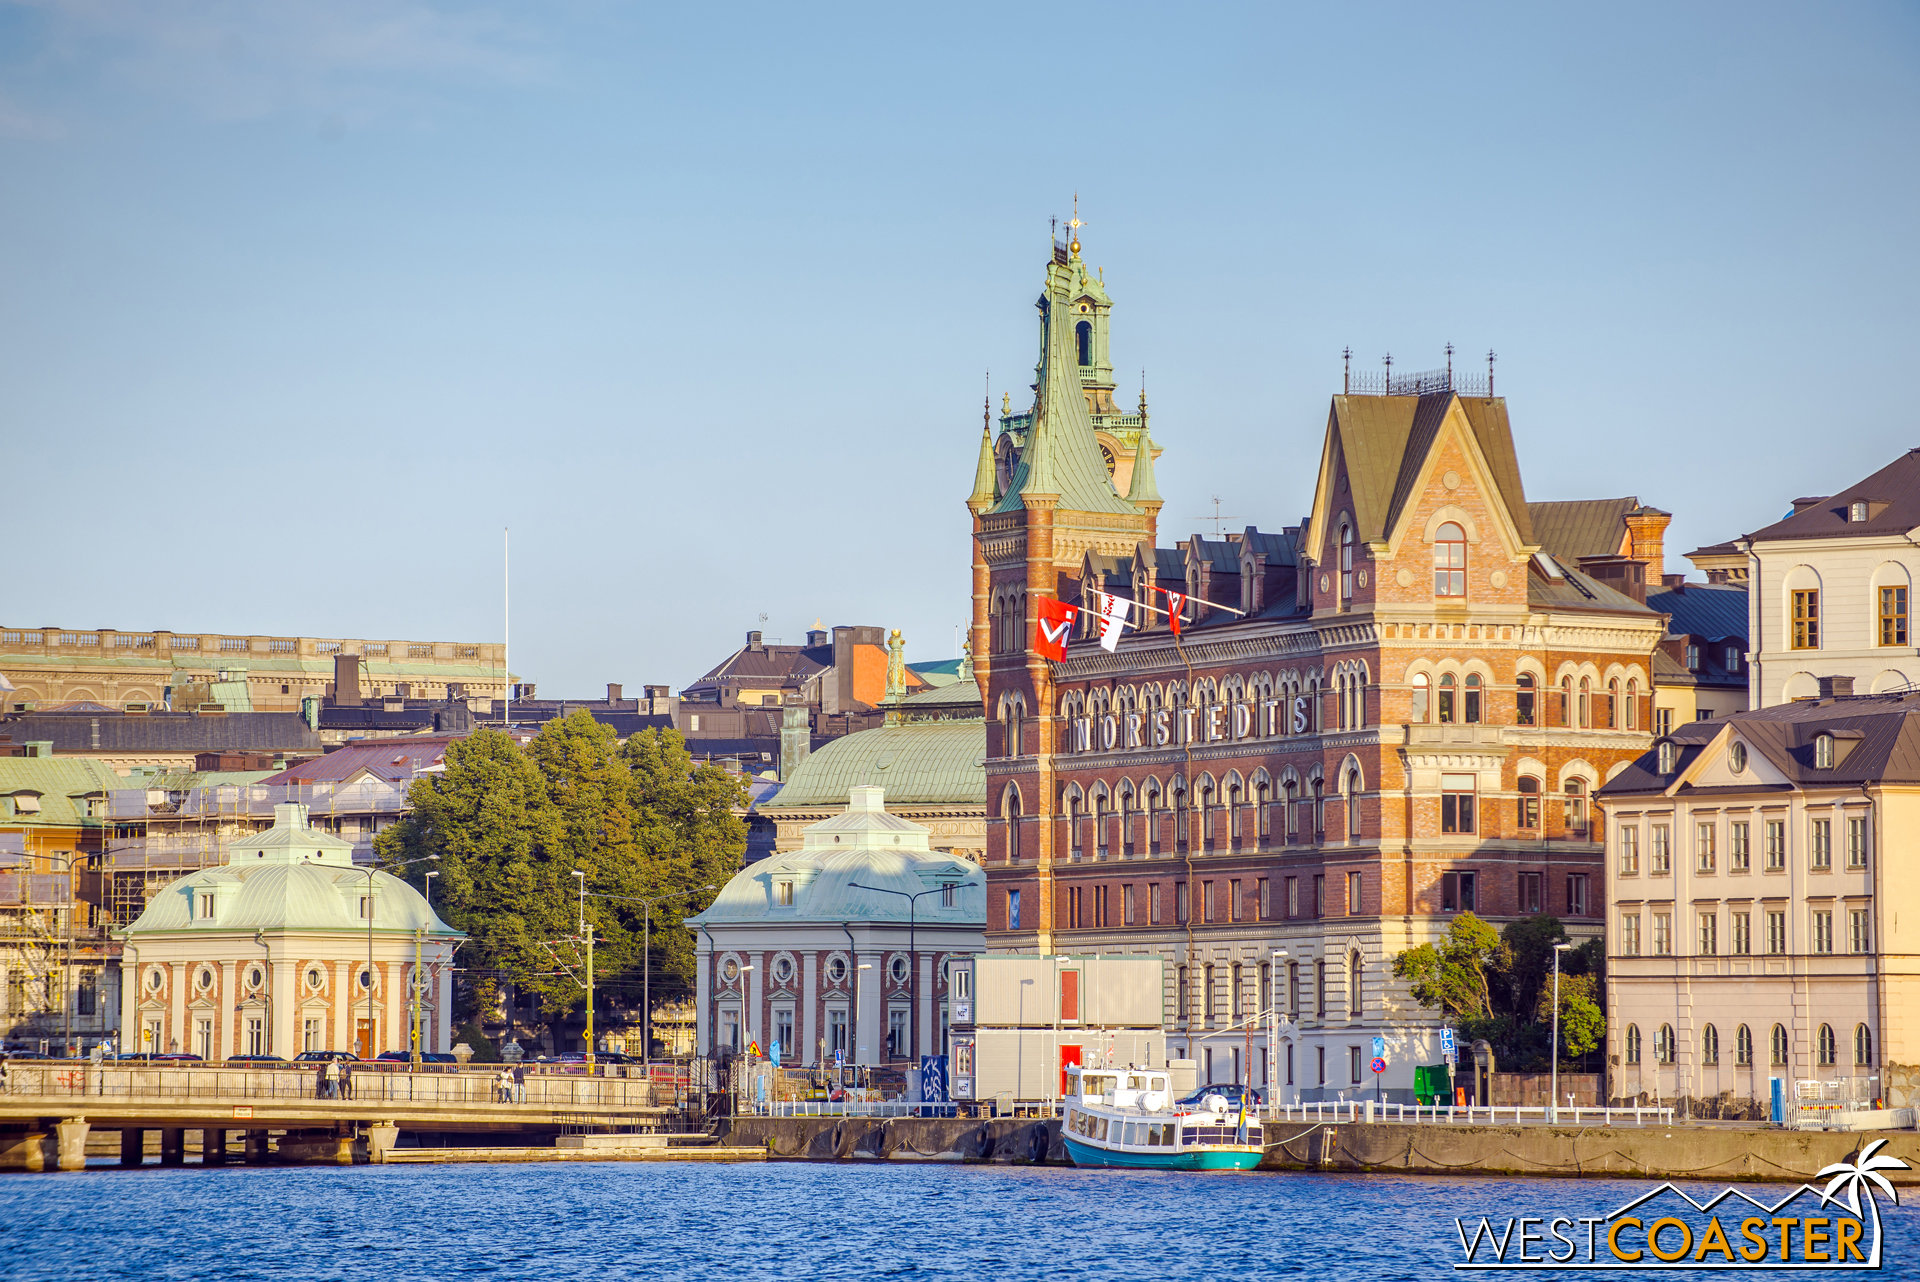 Old town Gamla Stan is the historic heart and core of the city.